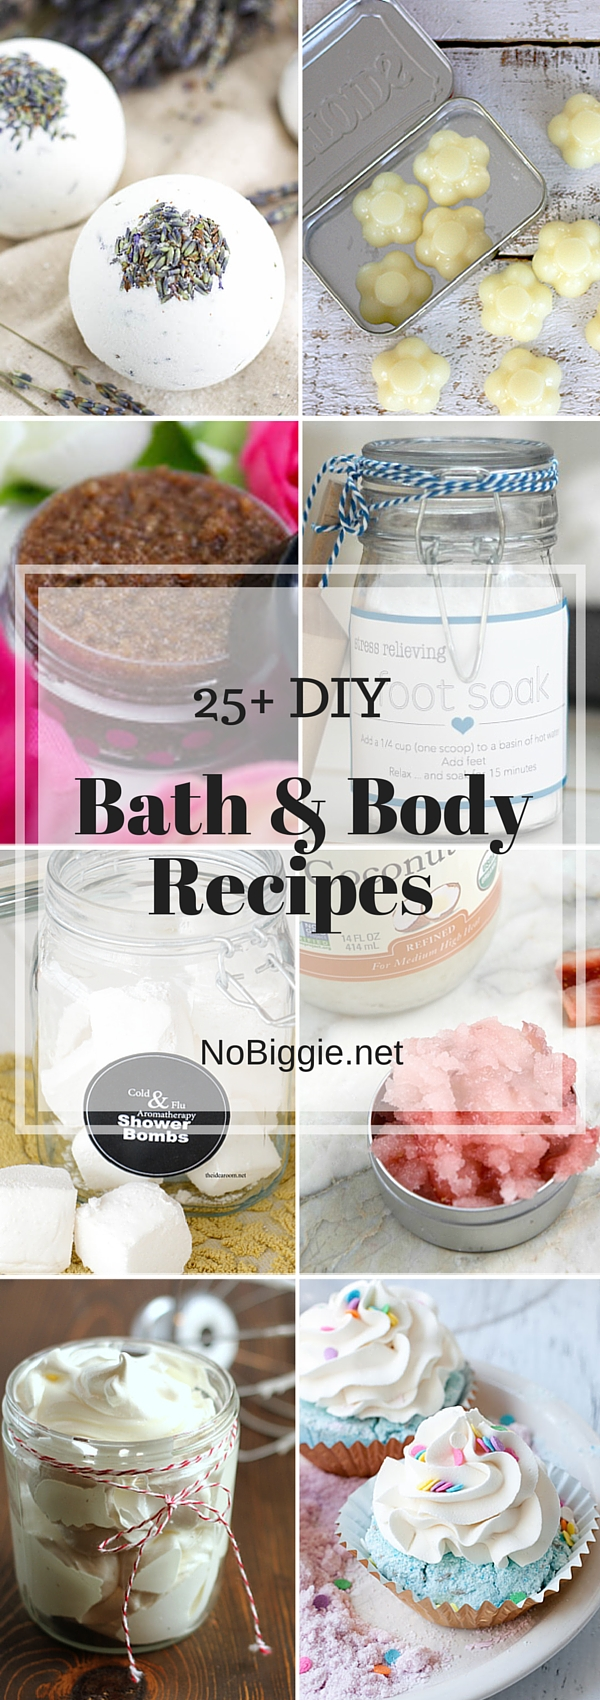 Bath & Body Recipes - great ways to pamper yourself or give the gift of pampering. #bathbody #bathandbody #diybathproducts #diybodyproducts